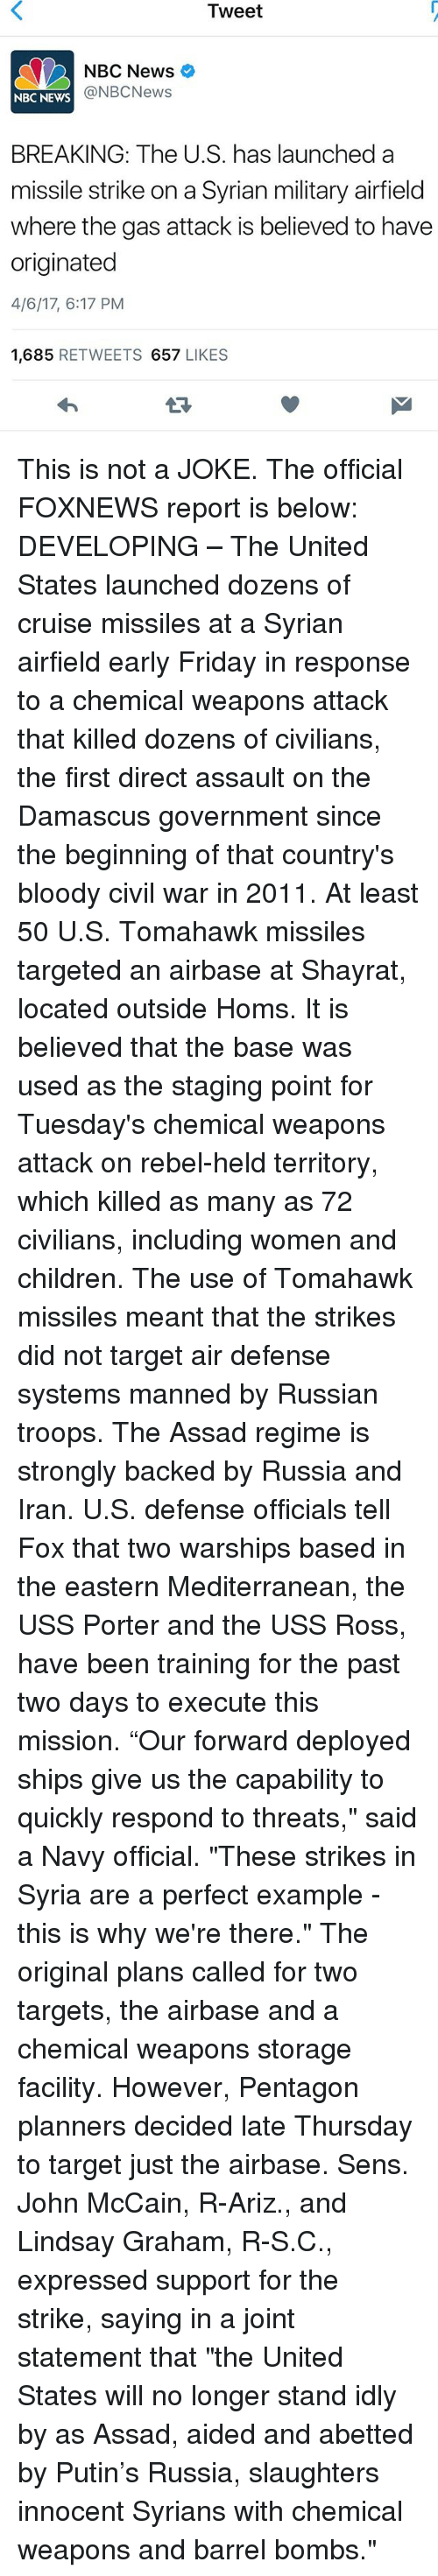 """Children, Friday, and Memes: Tweet  NBC News  @NBC News  NBC NEWS  BREAKING: The U.S. has launched a  missile strike on a Syrian military airfield  where the gas attack is believed to have  originated  4/6/17, 6:17 PM  1,685  RETWEETS  657  LIKES This is not a JOKE. The official FOXNEWS report is below: DEVELOPING – The United States launched dozens of cruise missiles at a Syrian airfield early Friday in response to a chemical weapons attack that killed dozens of civilians, the first direct assault on the Damascus government since the beginning of that country's bloody civil war in 2011. At least 50 U.S. Tomahawk missiles targeted an airbase at Shayrat, located outside Homs. It is believed that the base was used as the staging point for Tuesday's chemical weapons attack on rebel-held territory, which killed as many as 72 civilians, including women and children. The use of Tomahawk missiles meant that the strikes did not target air defense systems manned by Russian troops. The Assad regime is strongly backed by Russia and Iran. U.S. defense officials tell Fox that two warships based in the eastern Mediterranean, the USS Porter and the USS Ross, have been training for the past two days to execute this mission. """"Our forward deployed ships give us the capability to quickly respond to threats,"""" said a Navy official. """"These strikes in Syria are a perfect example - this is why we're there."""" The original plans called for two targets, the airbase and a chemical weapons storage facility. However, Pentagon planners decided late Thursday to target just the airbase. Sens. John McCain, R-Ariz., and Lindsay Graham, R-S.C., expressed support for the strike, saying in a joint statement that """"the United States will no longer stand idly by as Assad, aided and abetted by Putin's Russia, slaughters innocent Syrians with chemical weapons and barrel bombs."""""""